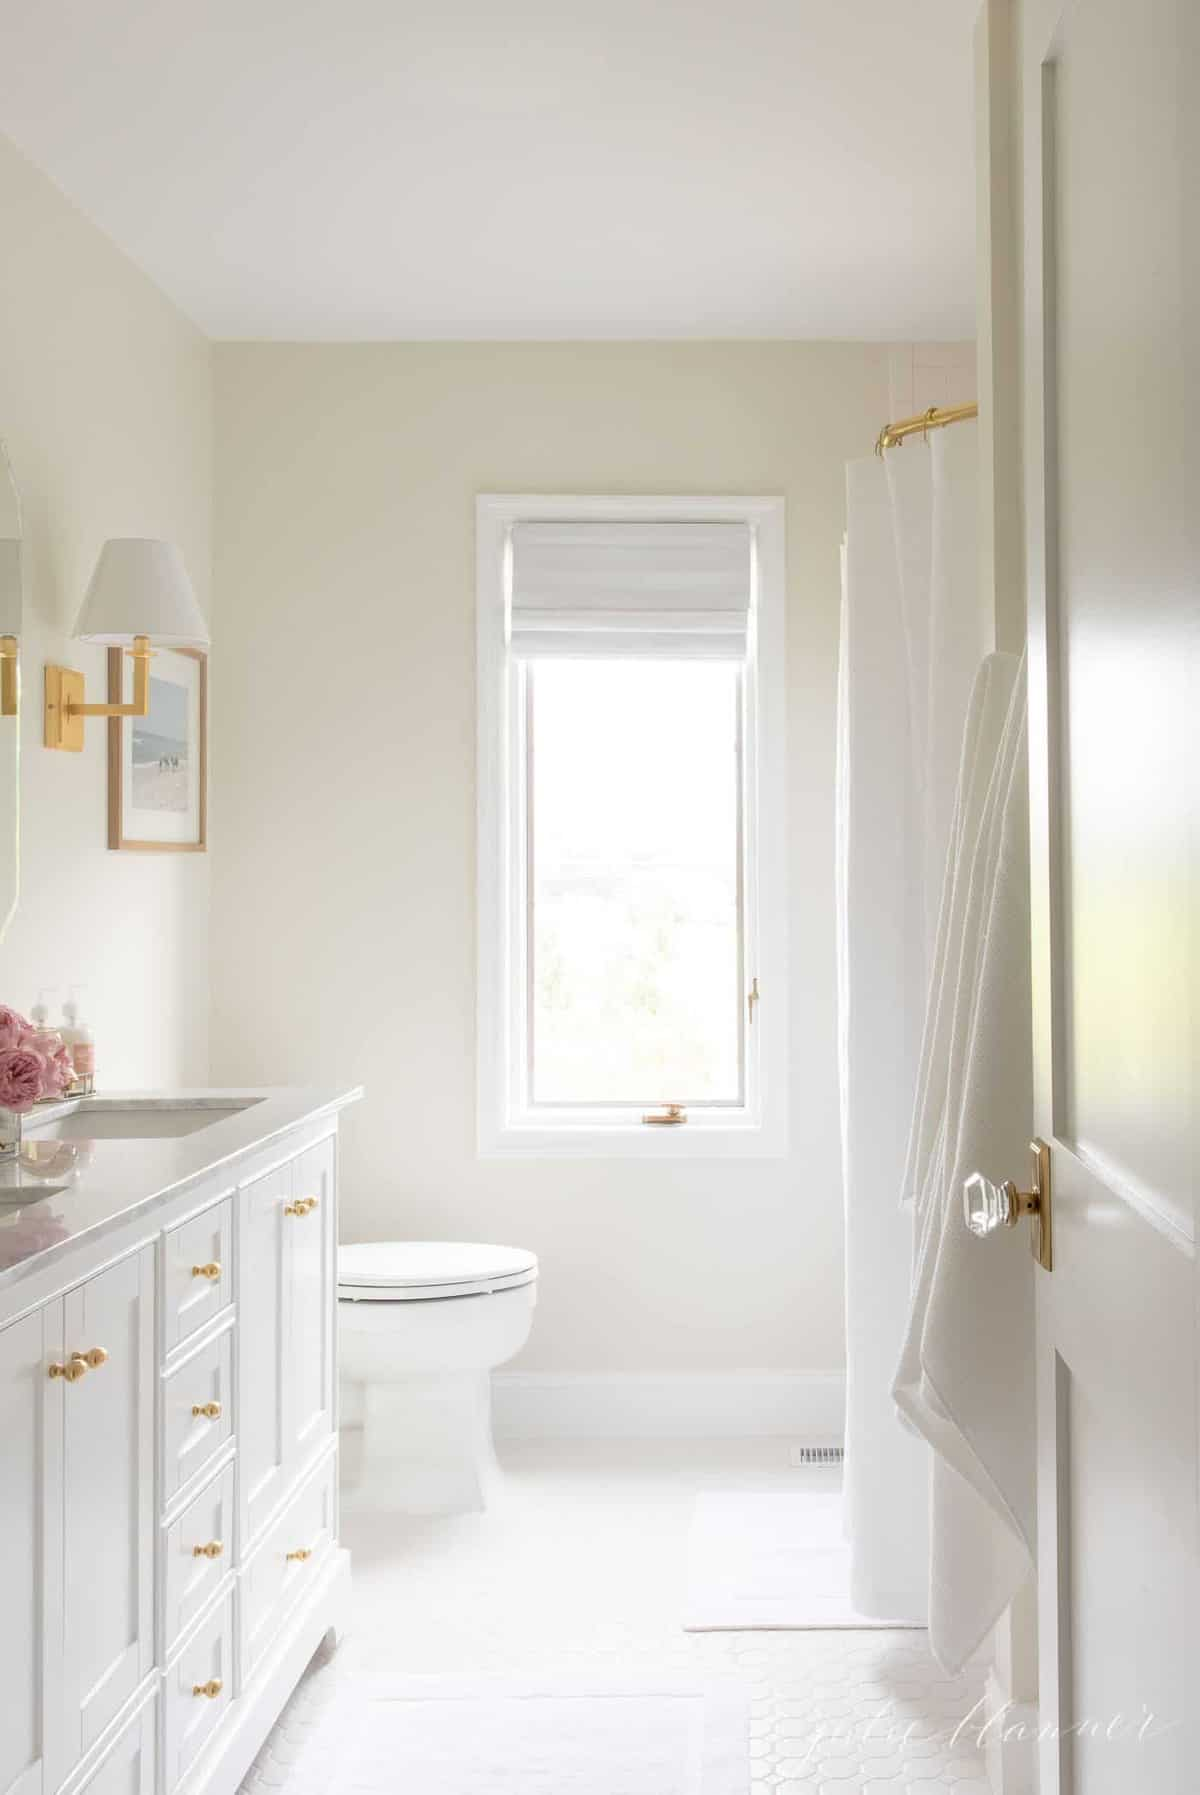 A pretty white bathroom with Benjamin Moore White Dove trim paint.